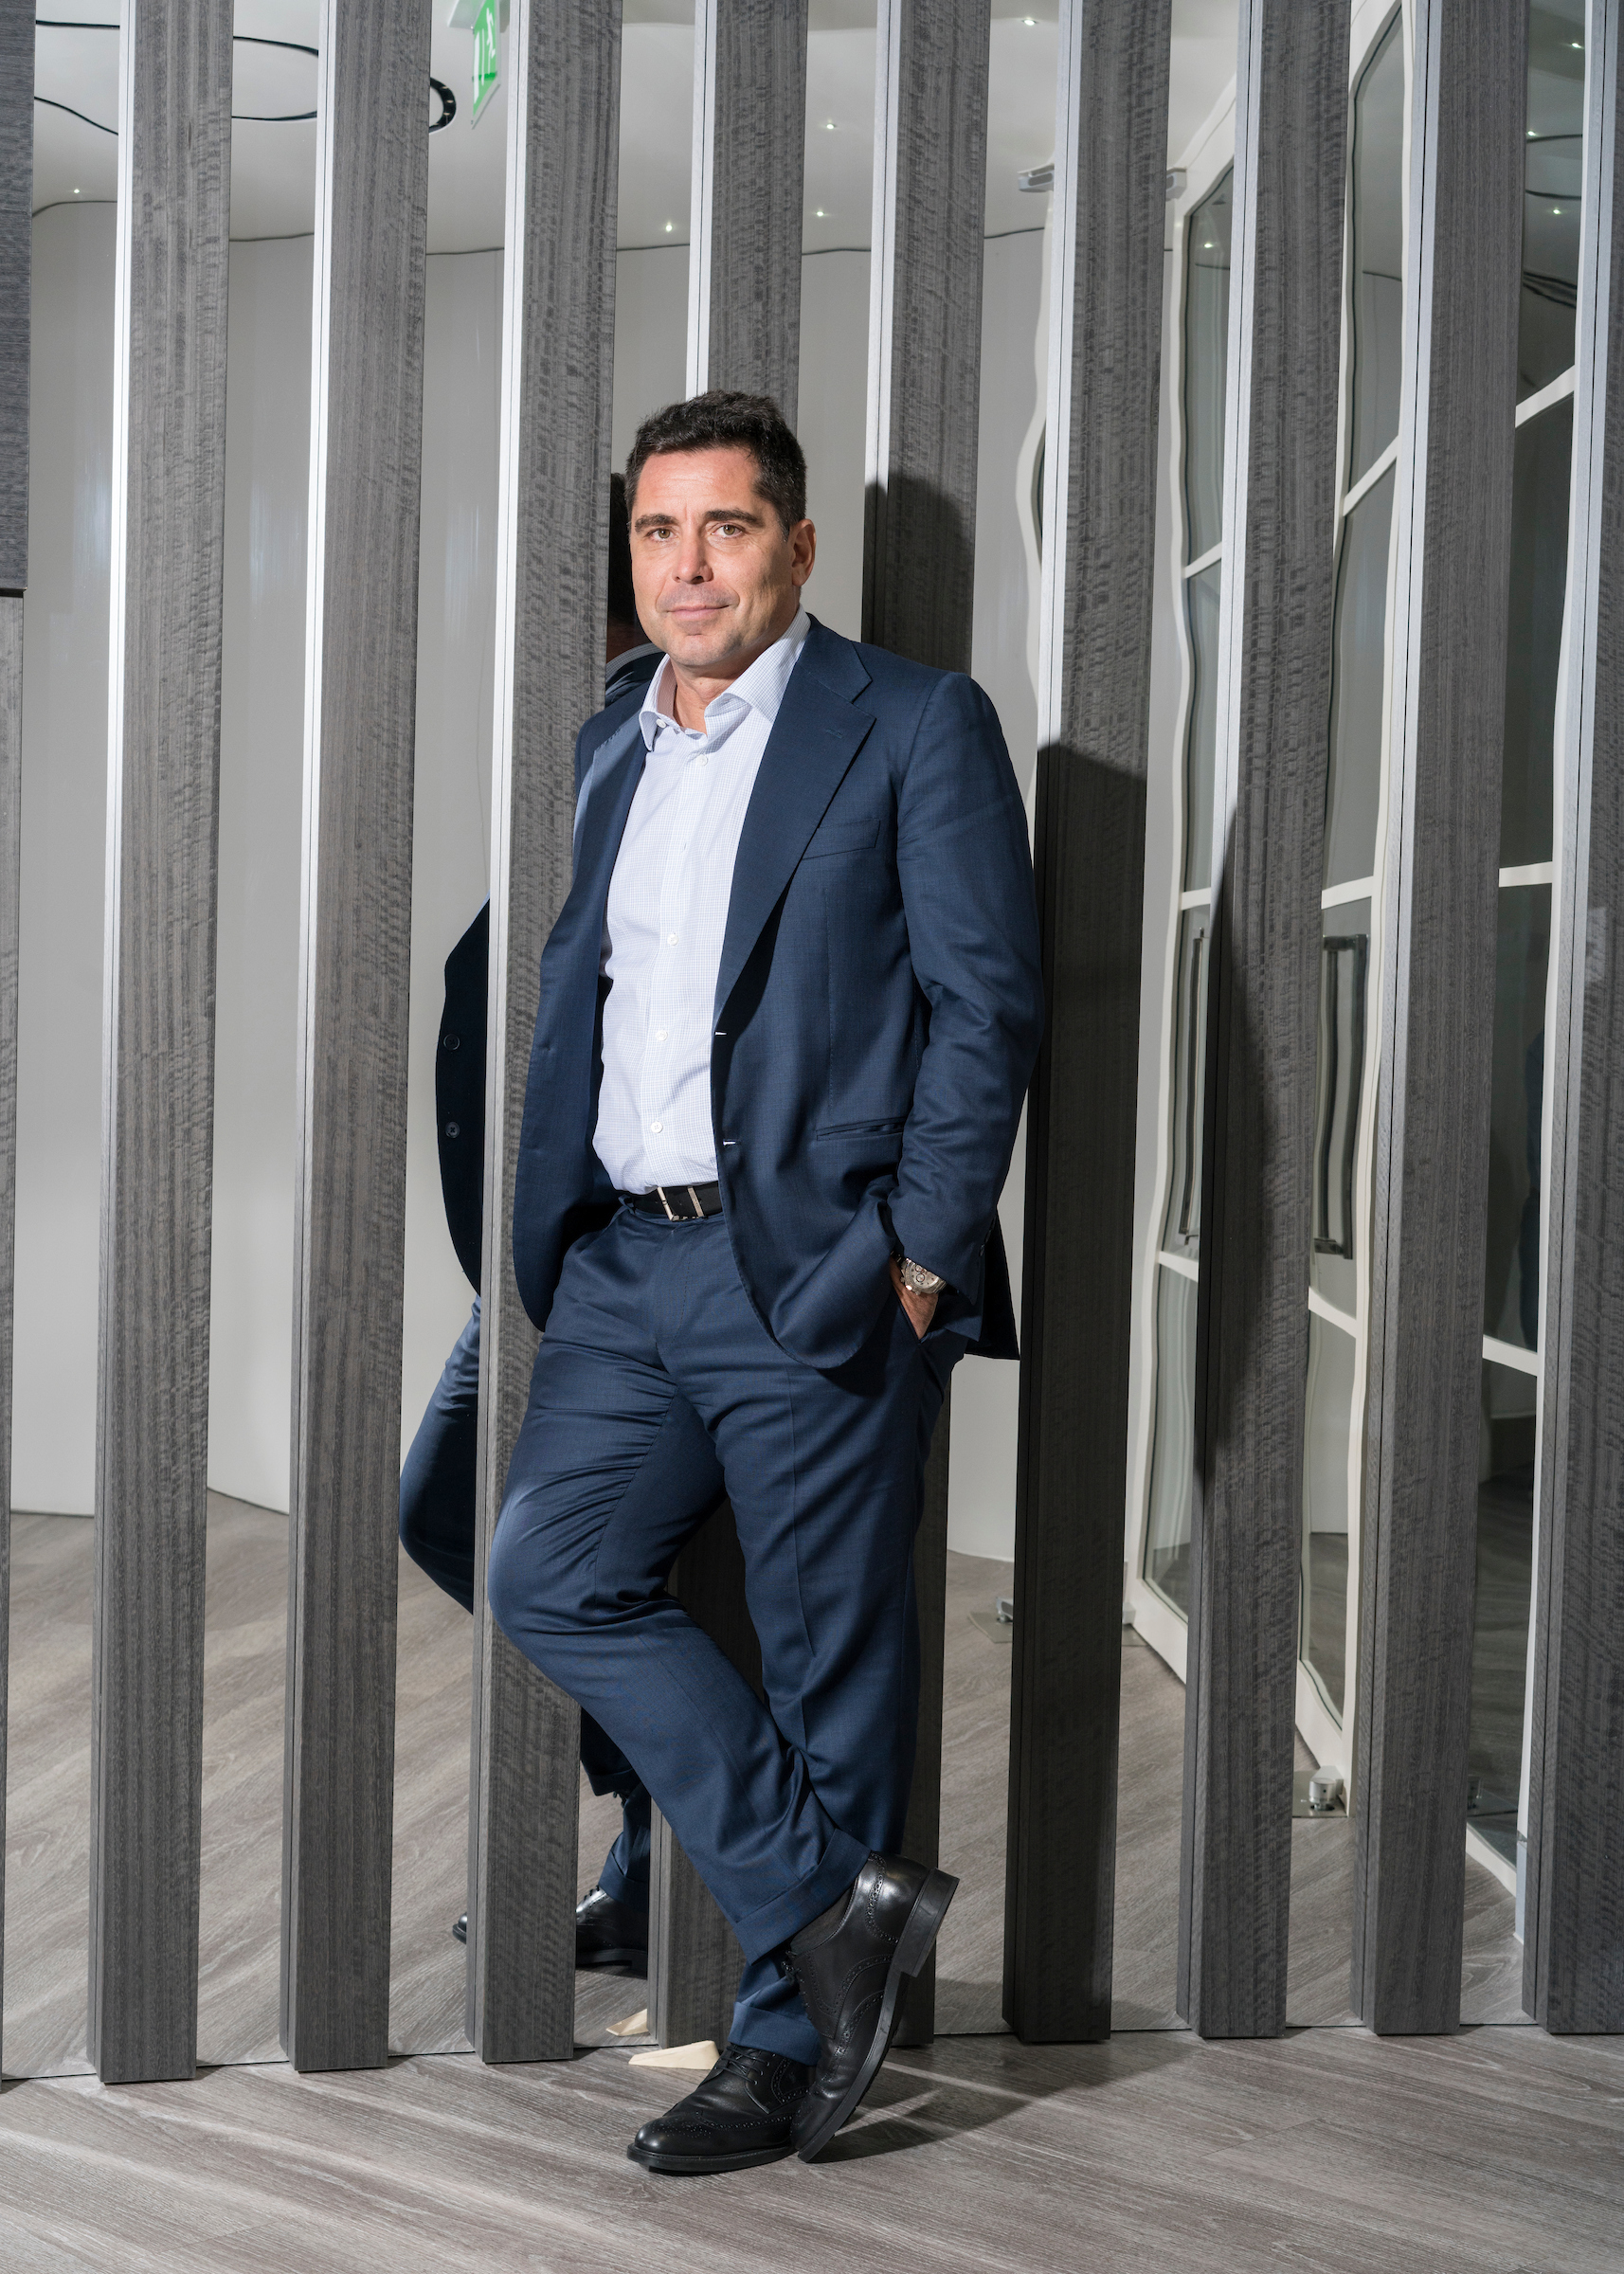 Riccardo Silva at Silva International Investments' London Office